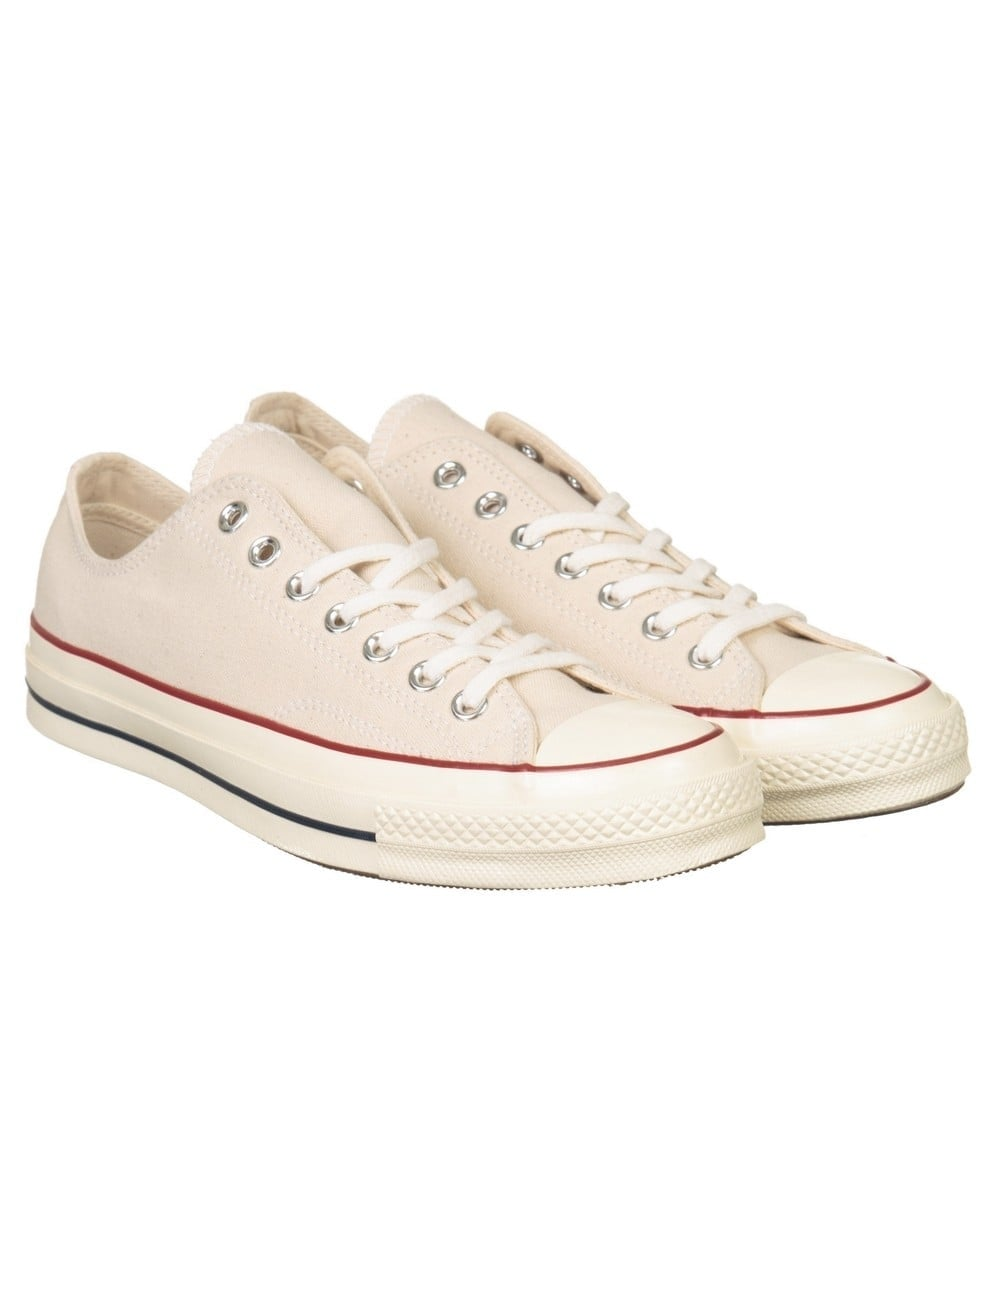 959825fee7ee Converse Chuck Taylor 70s Ox Shoes - Parchment - Footwear from Fat ...